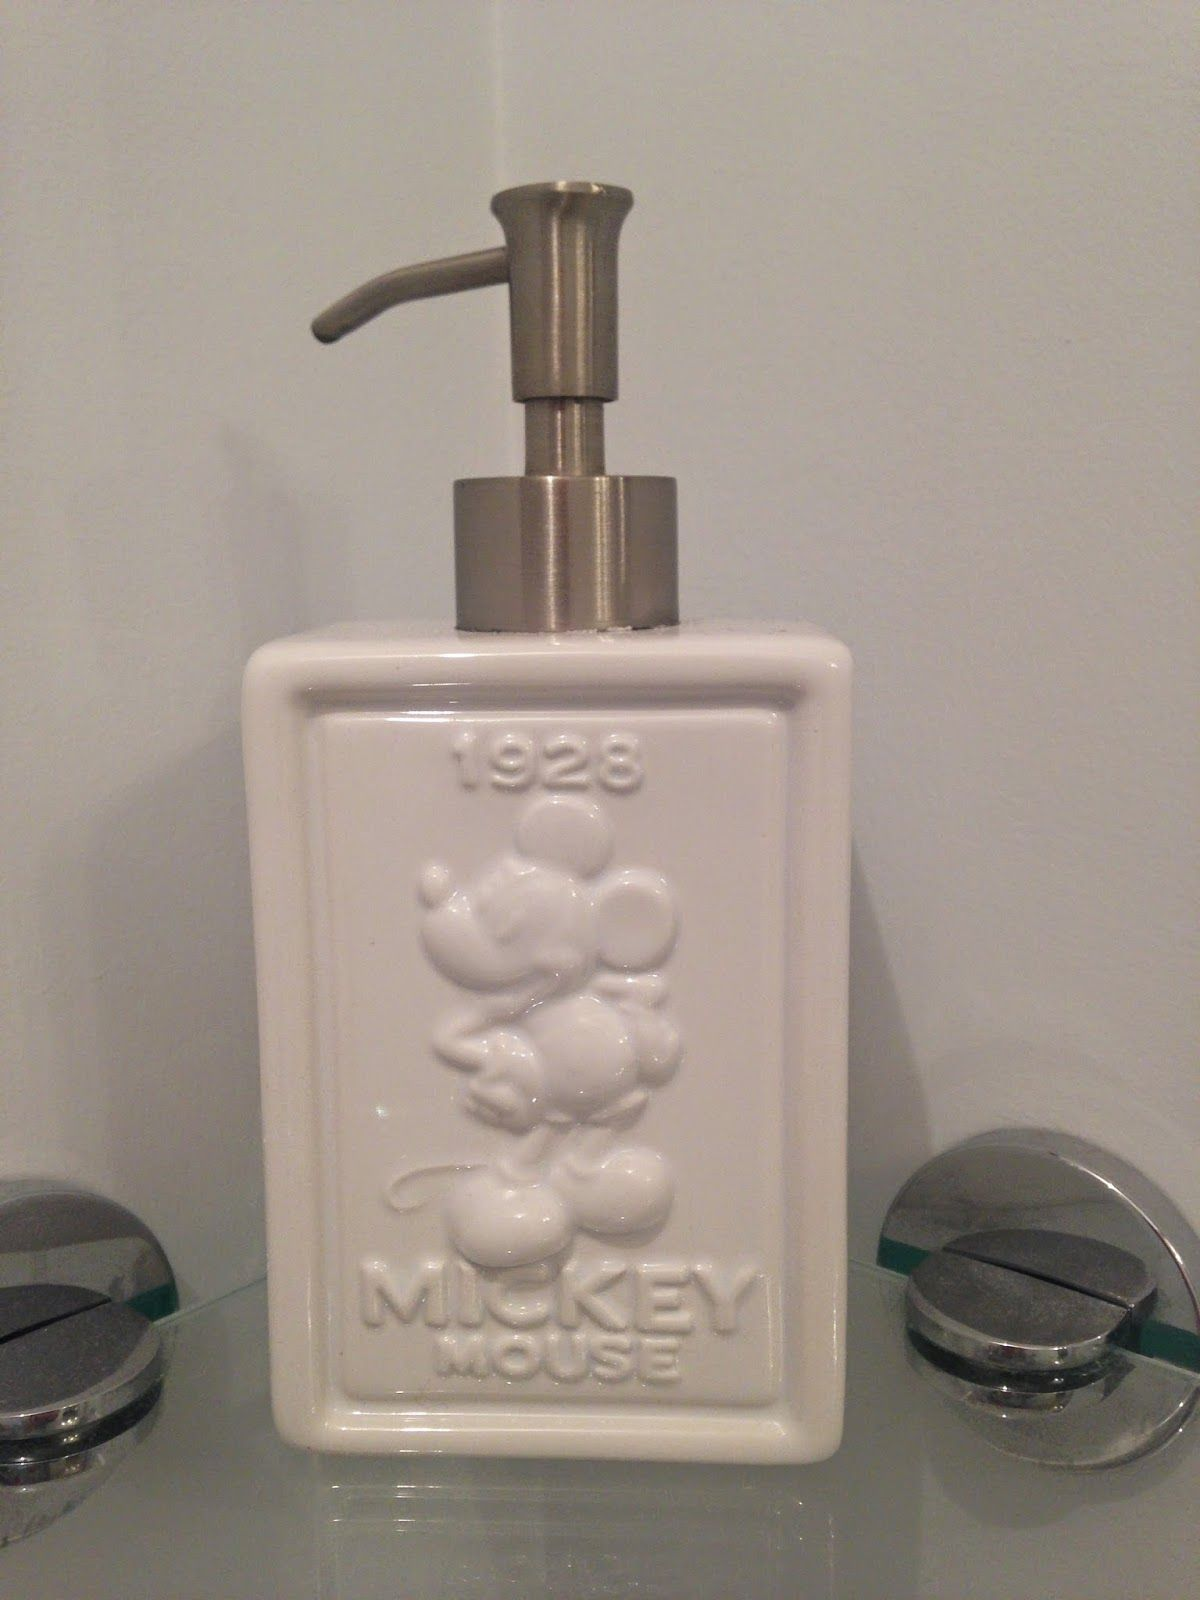 Bringing some disney decor to your home - Mickey Mouse soap ...